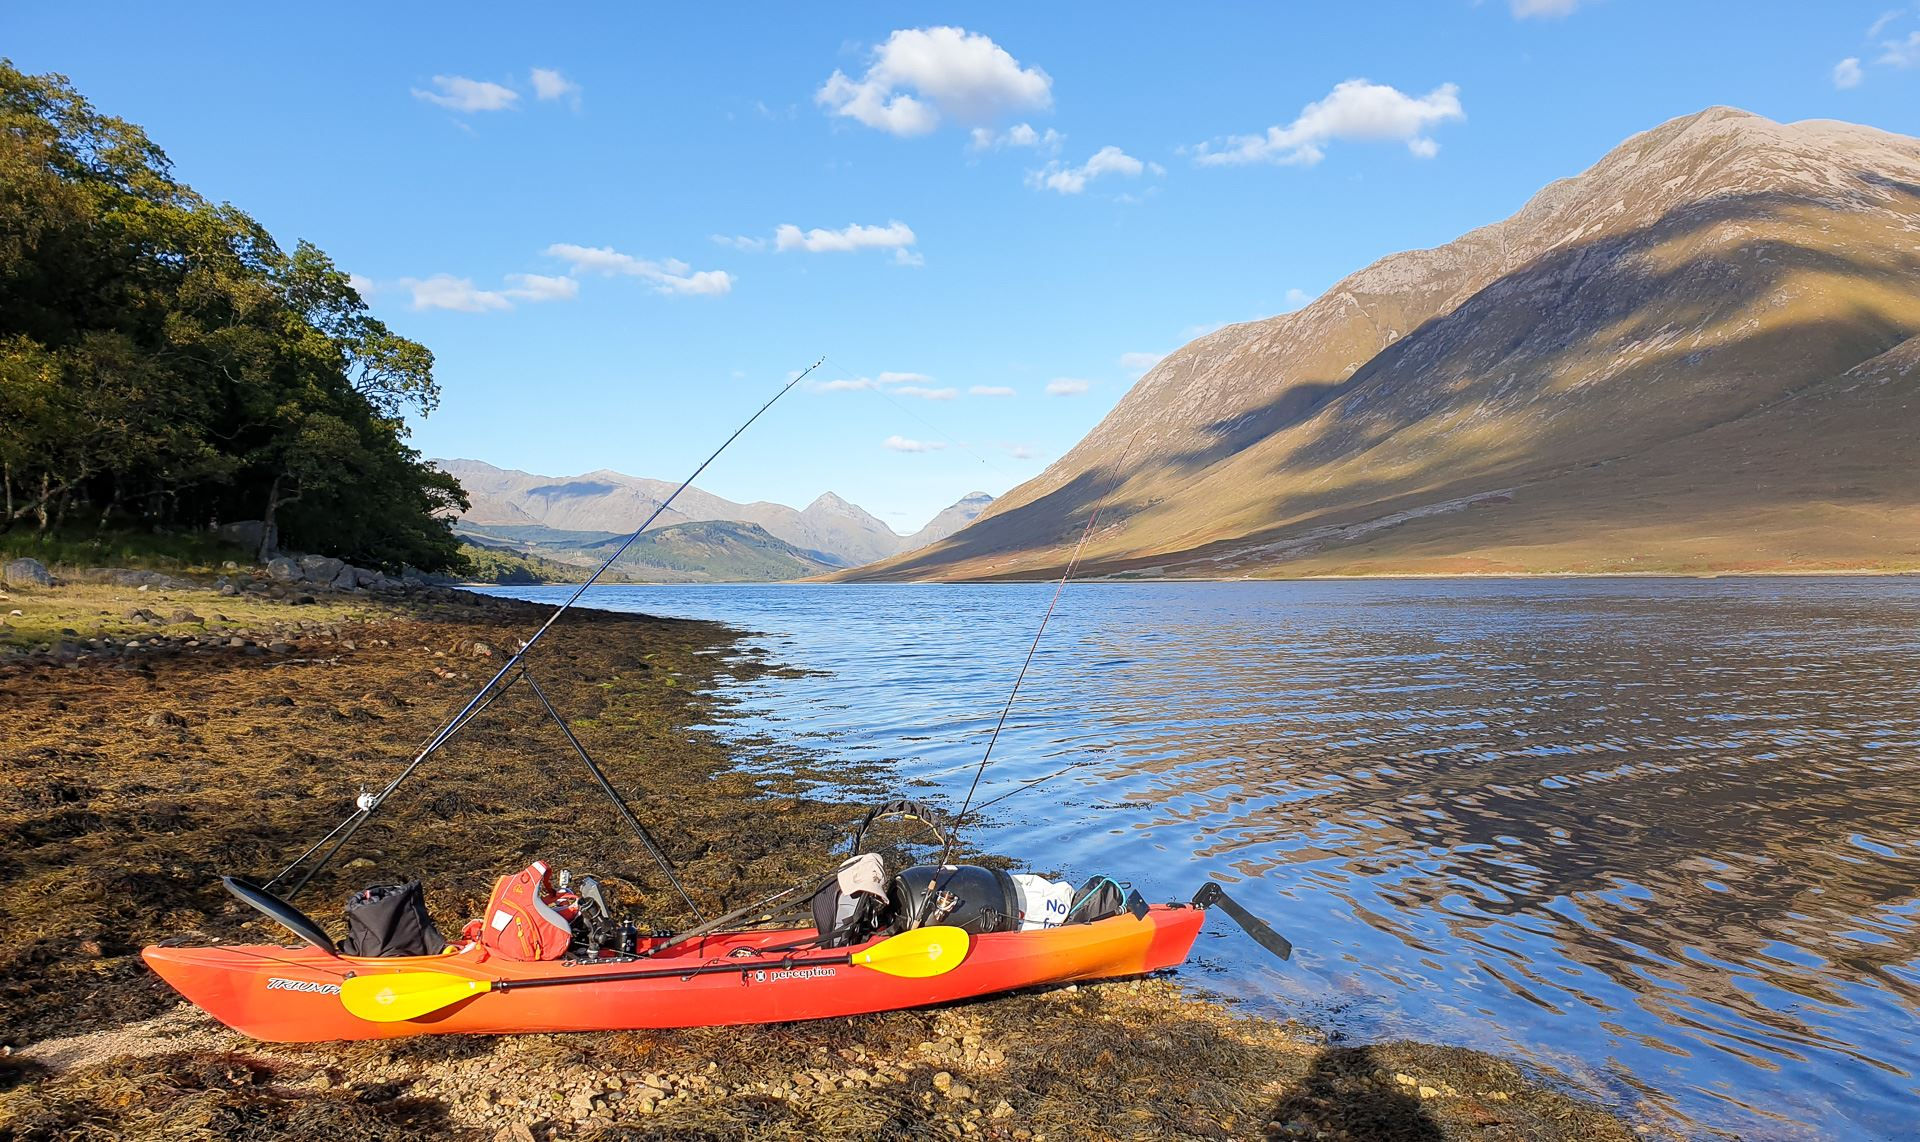 My kayak on the shores of Loch Etive